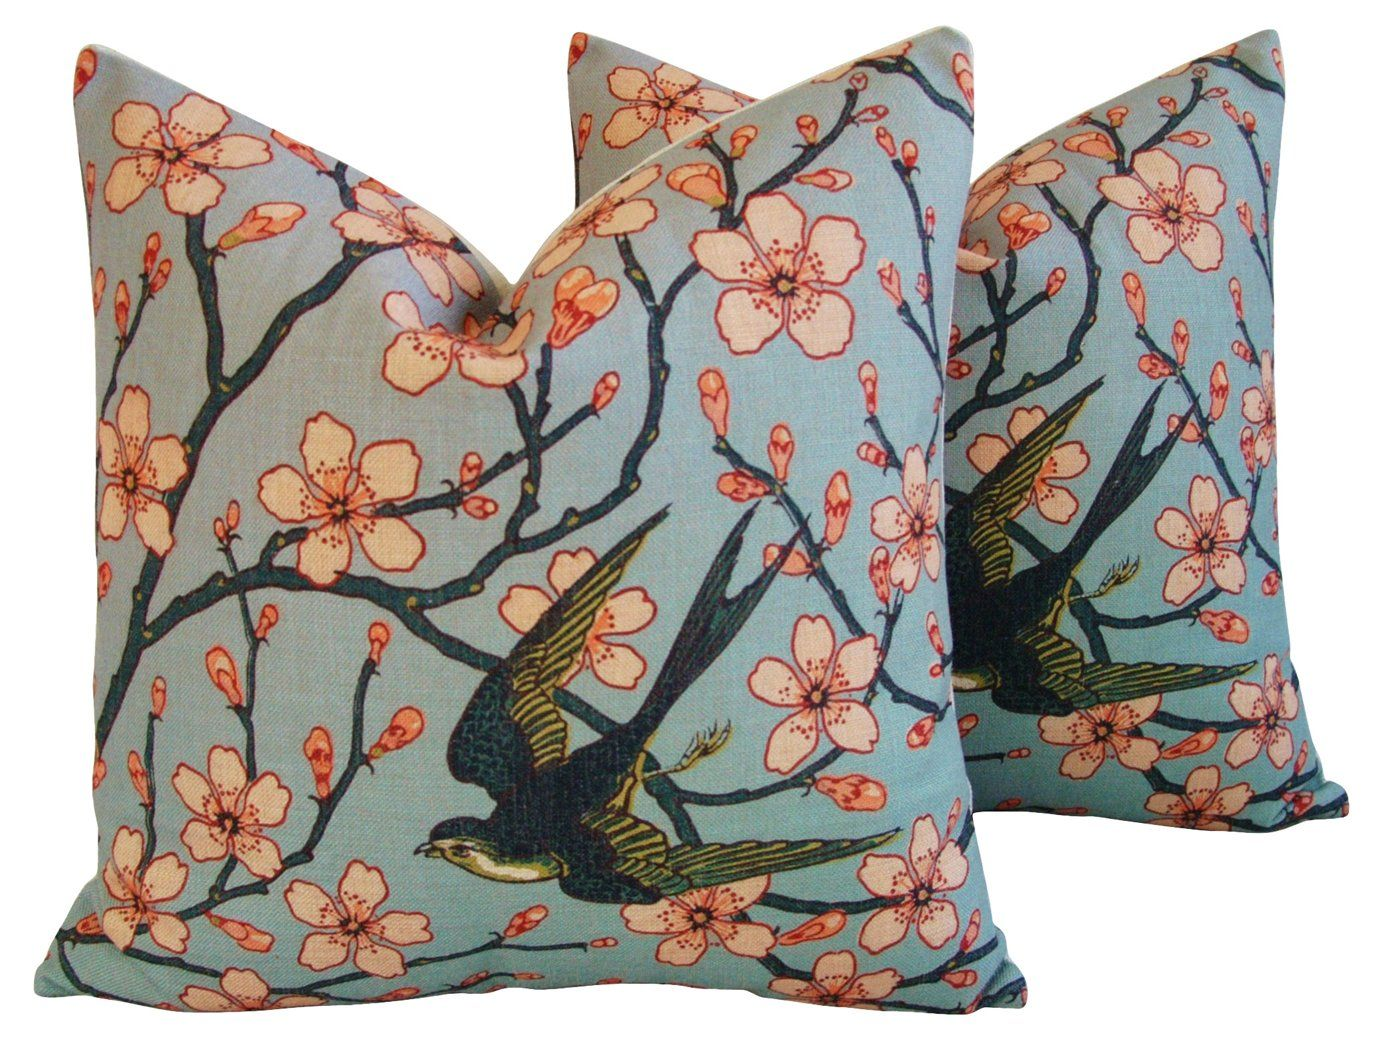 Magnolia Blossoms/Sparrow Pillows, Pair - Mike Seratt - Top Vintage Dealers - Vintage  One Kings Lane #Pillows#Pair#Mike